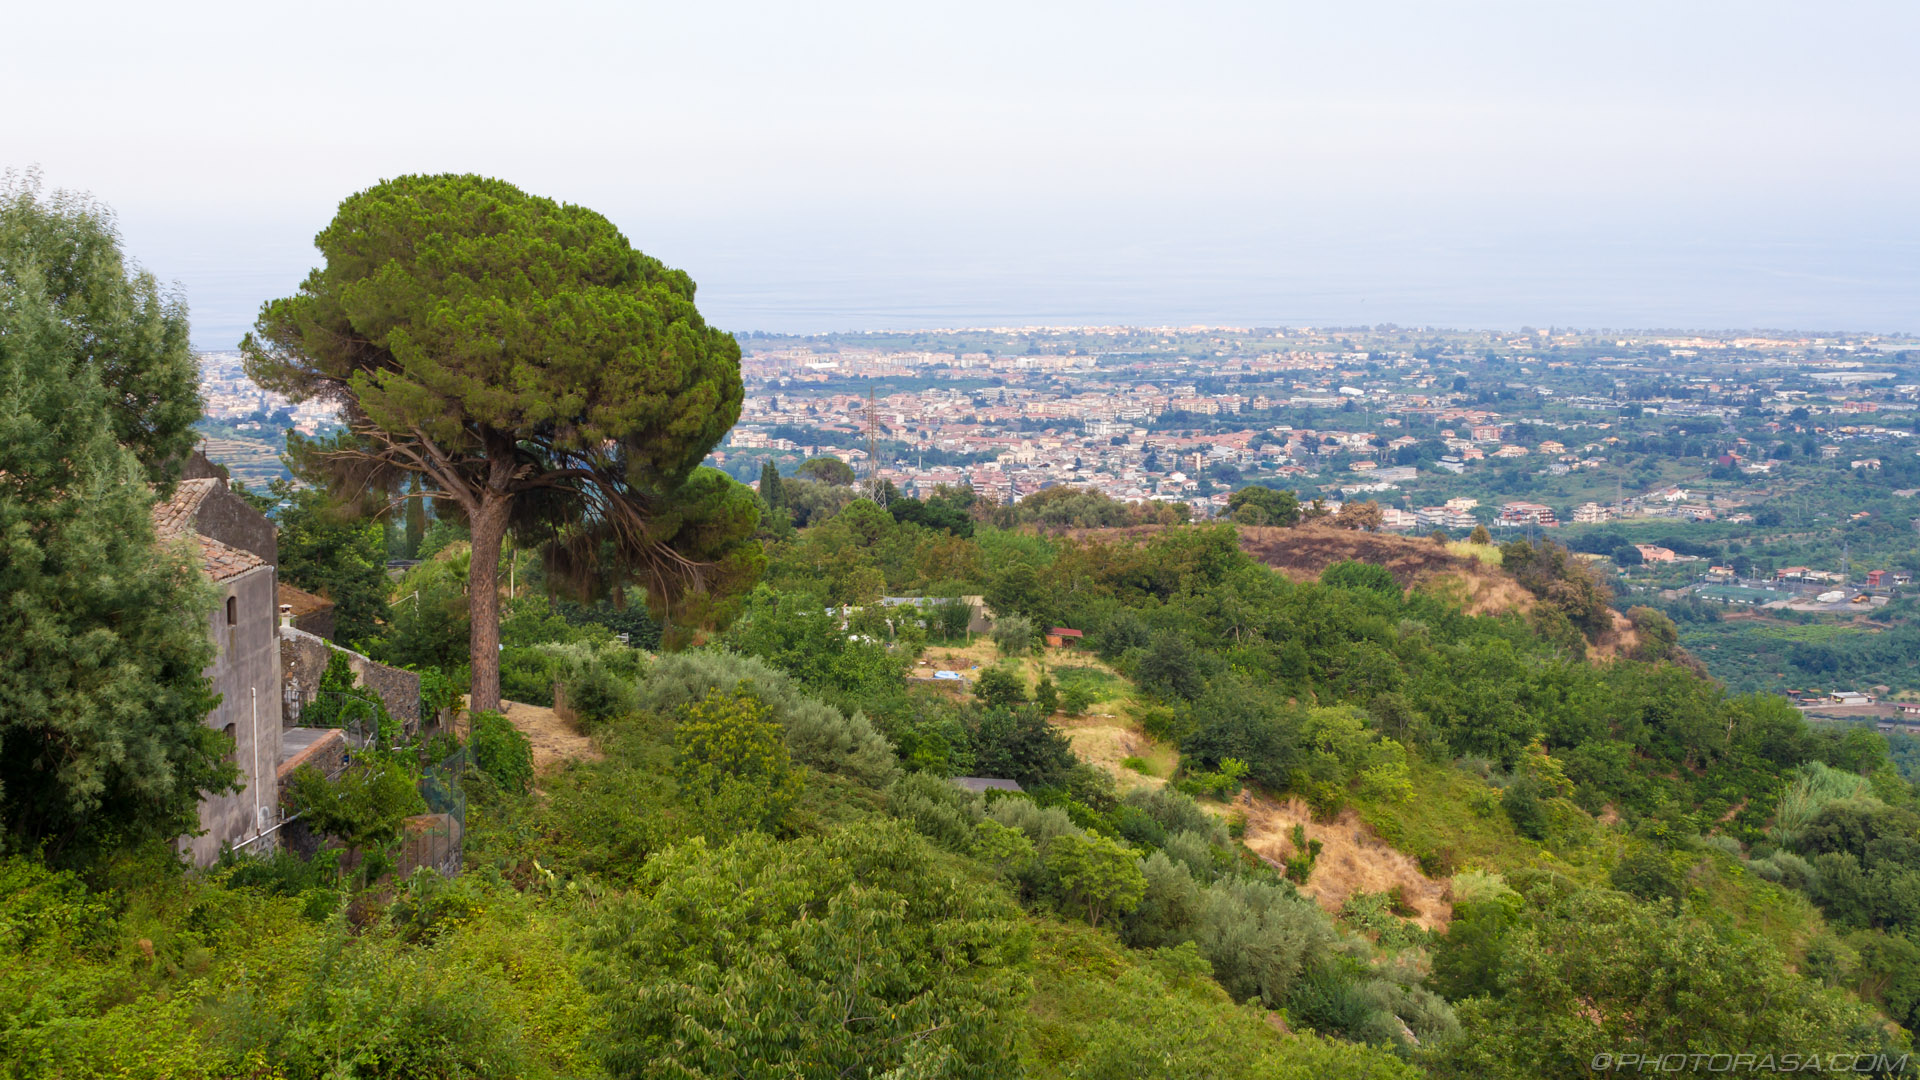 http://photorasa.com/italian-pine-with-giarre-in-the-background/